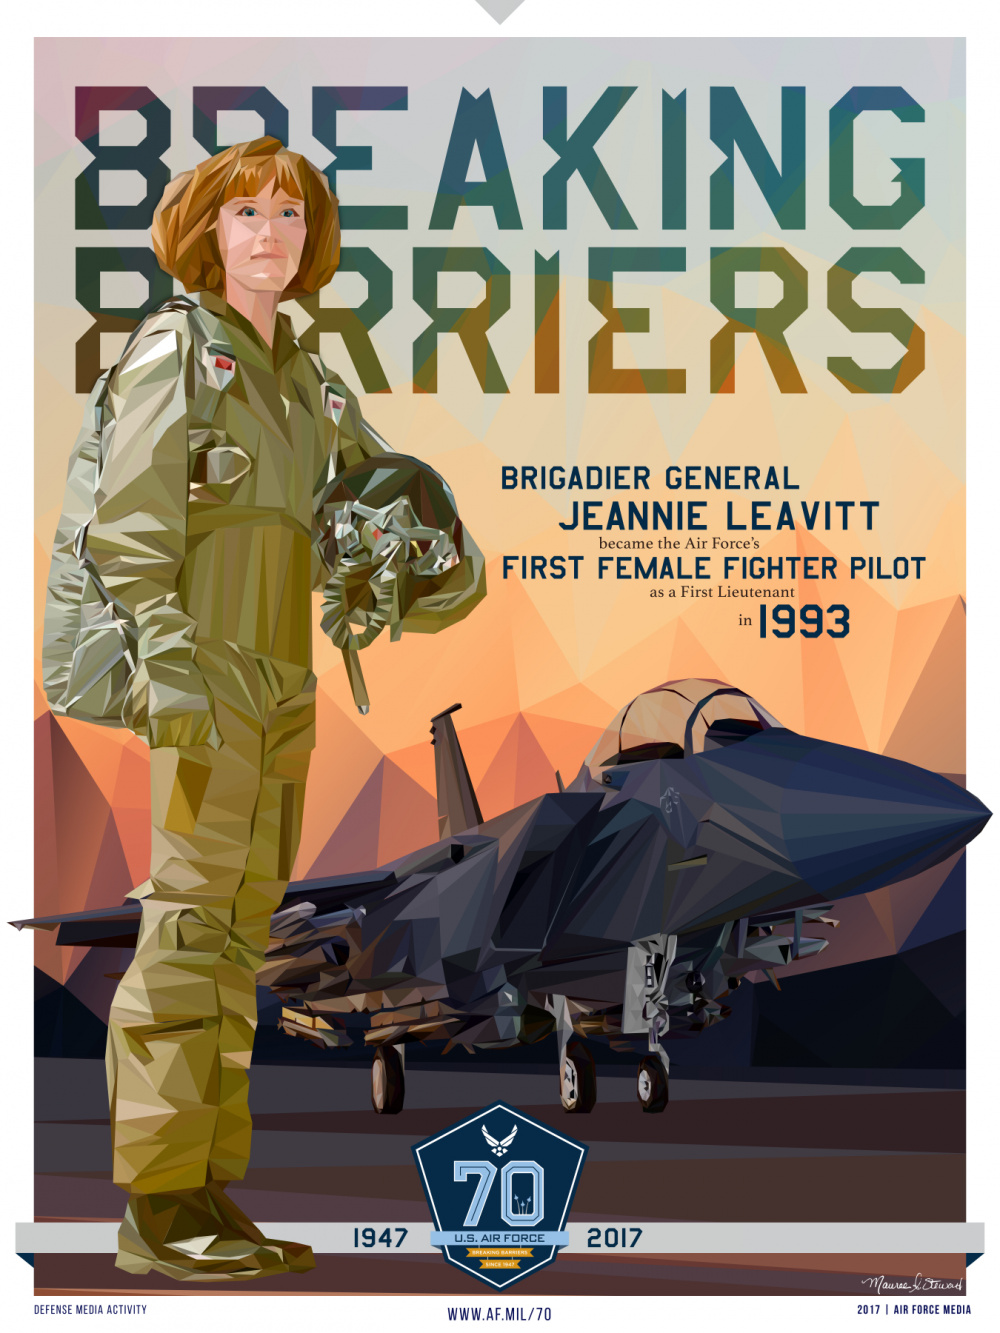 Breaking Barriers-First Female Fighter Pilot (6 of 8)